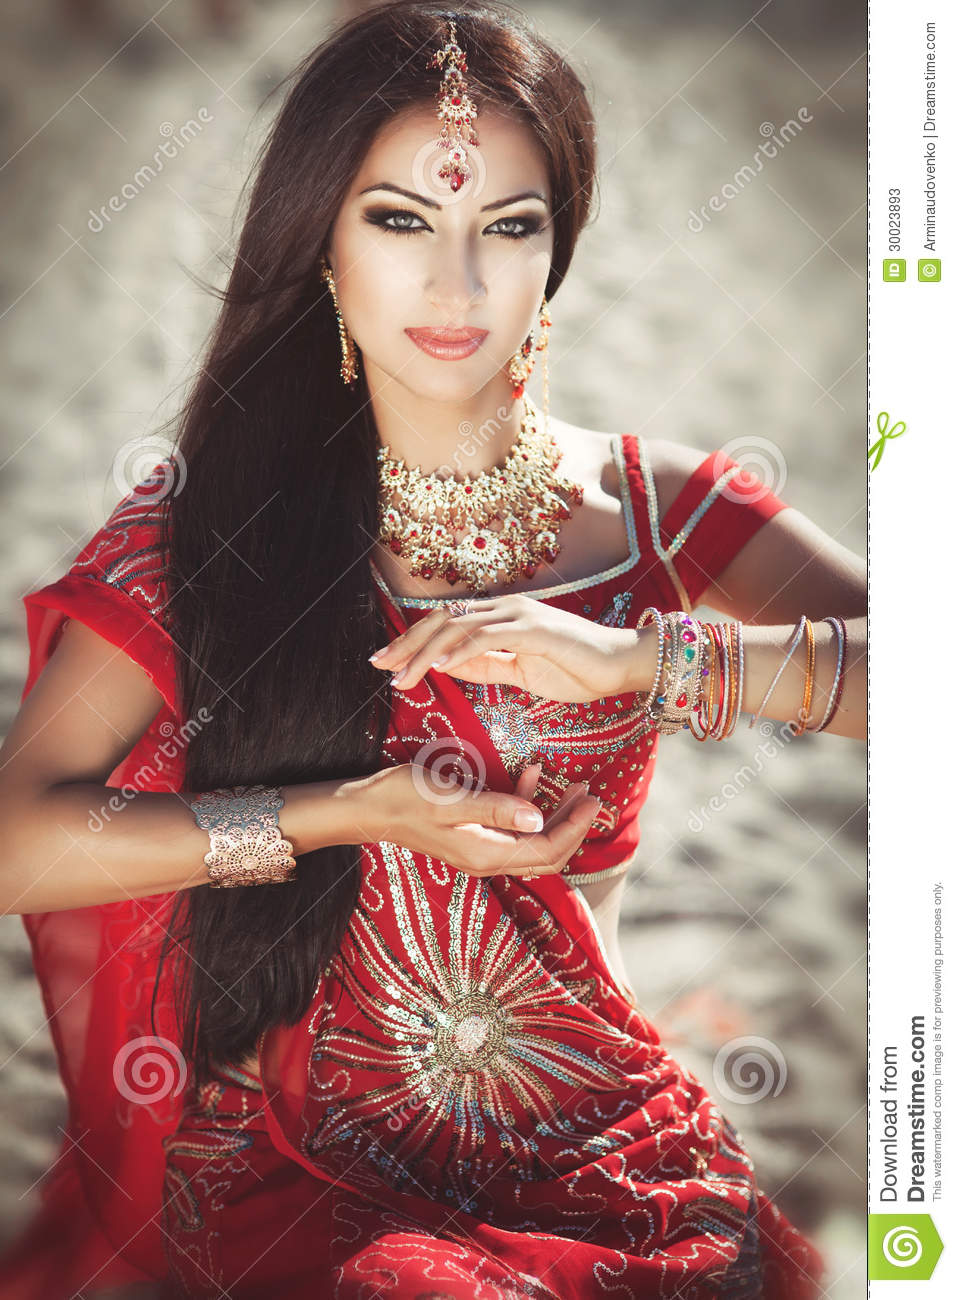 Beautiful Indian Girls: Beautiful Indian Woman Bellydancer. Arabian Bride Stock